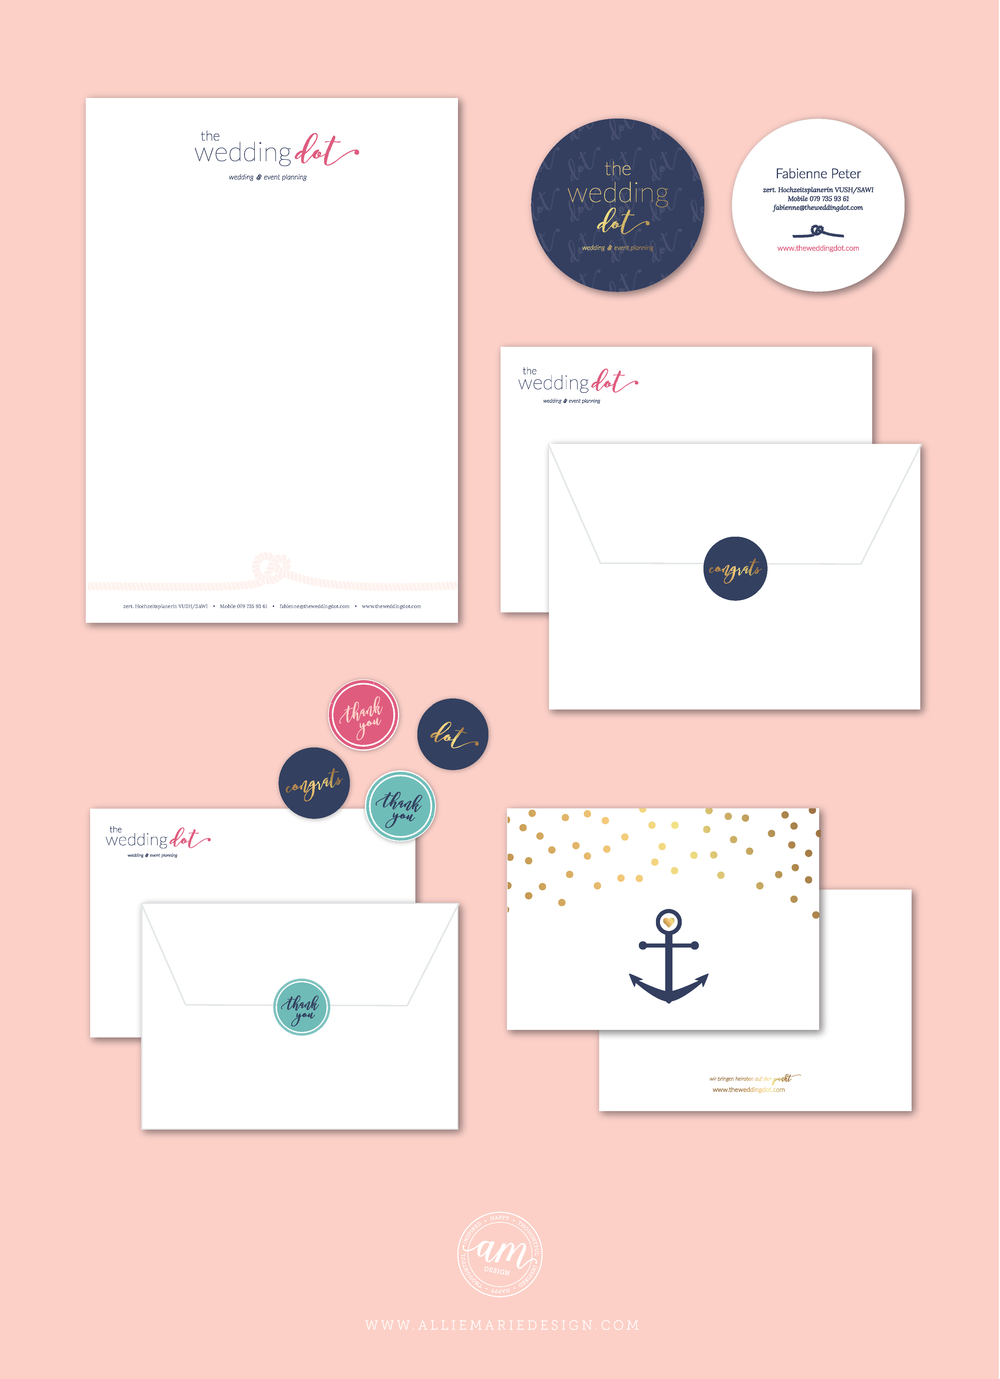 The Wedding Dot Print Materials, Branding and Styling designed by AllieMarie Design